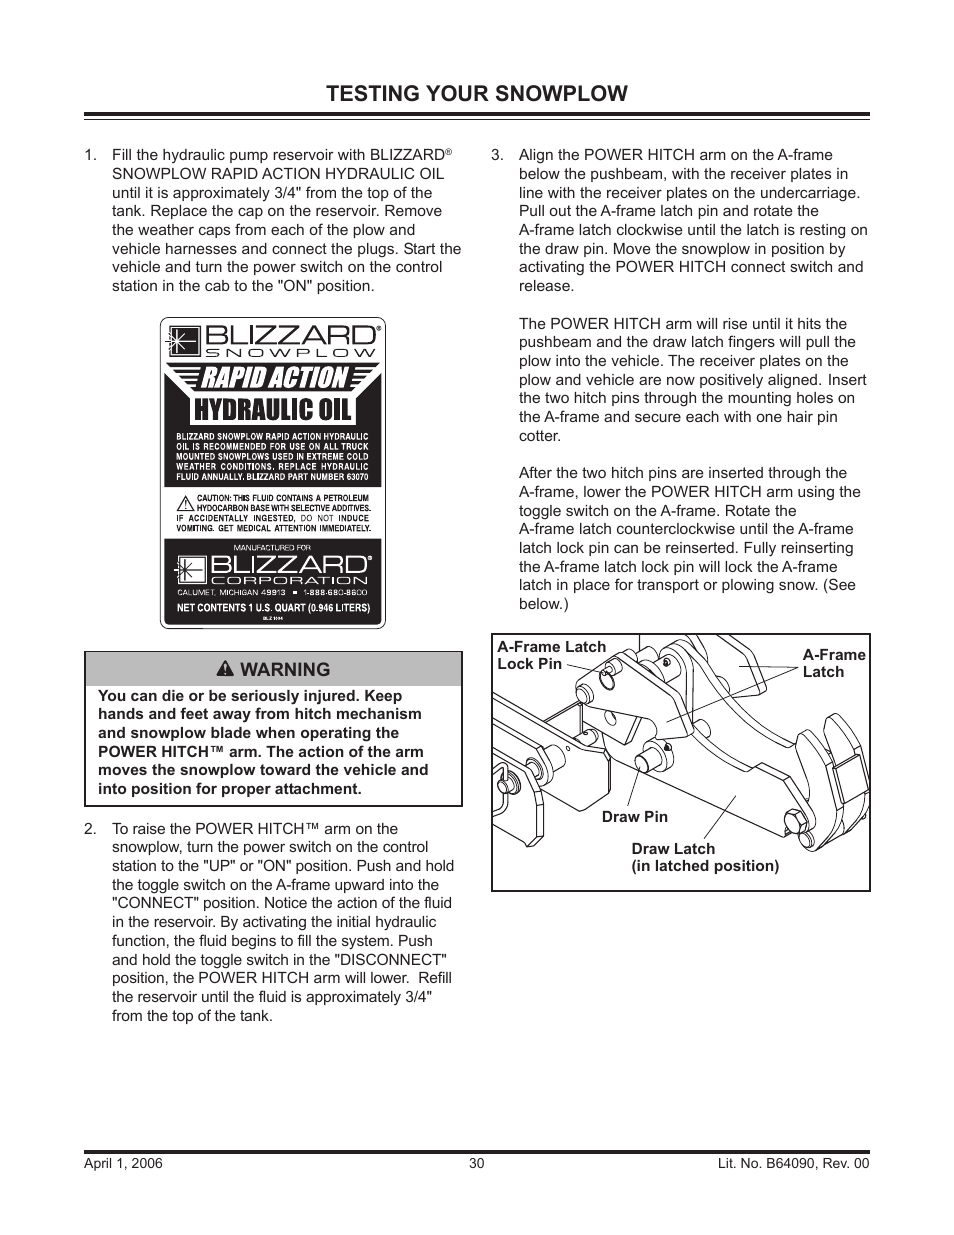 medium resolution of testing your snowplow blizzard snowplows 760hd user manual page 30 52